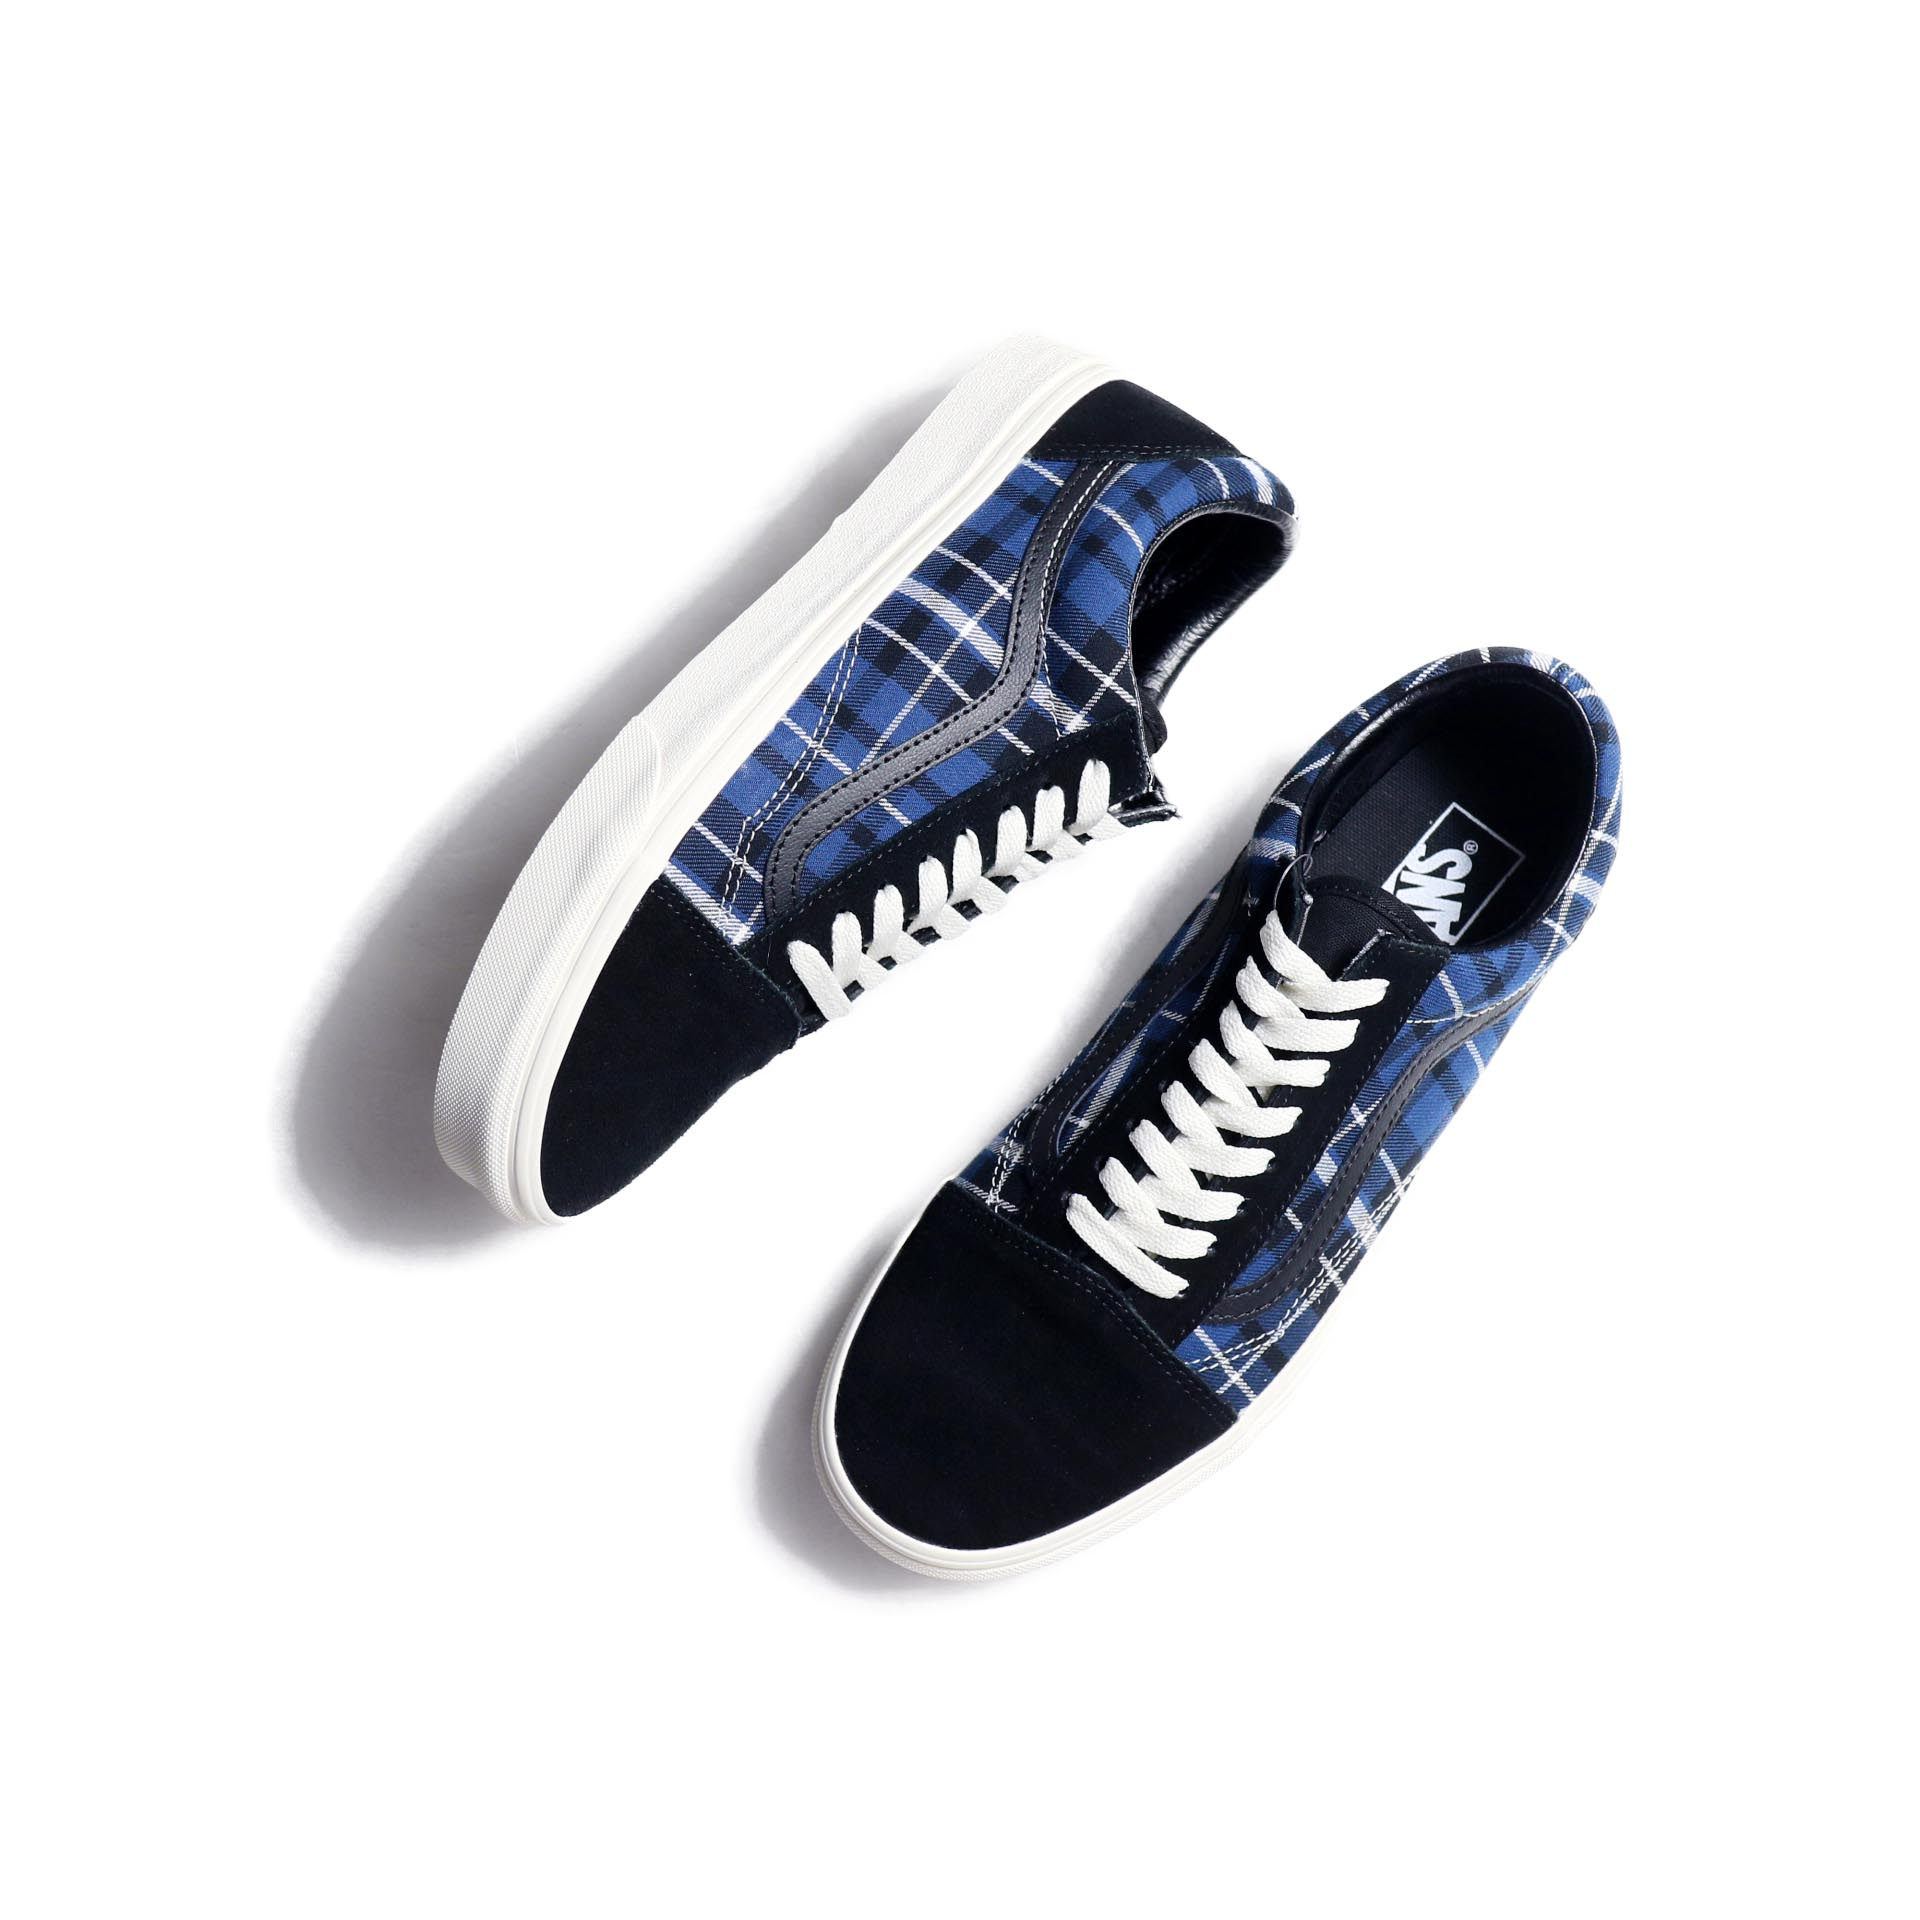 VANS / OLD SKOOL (PlaidMix) Black/Navy